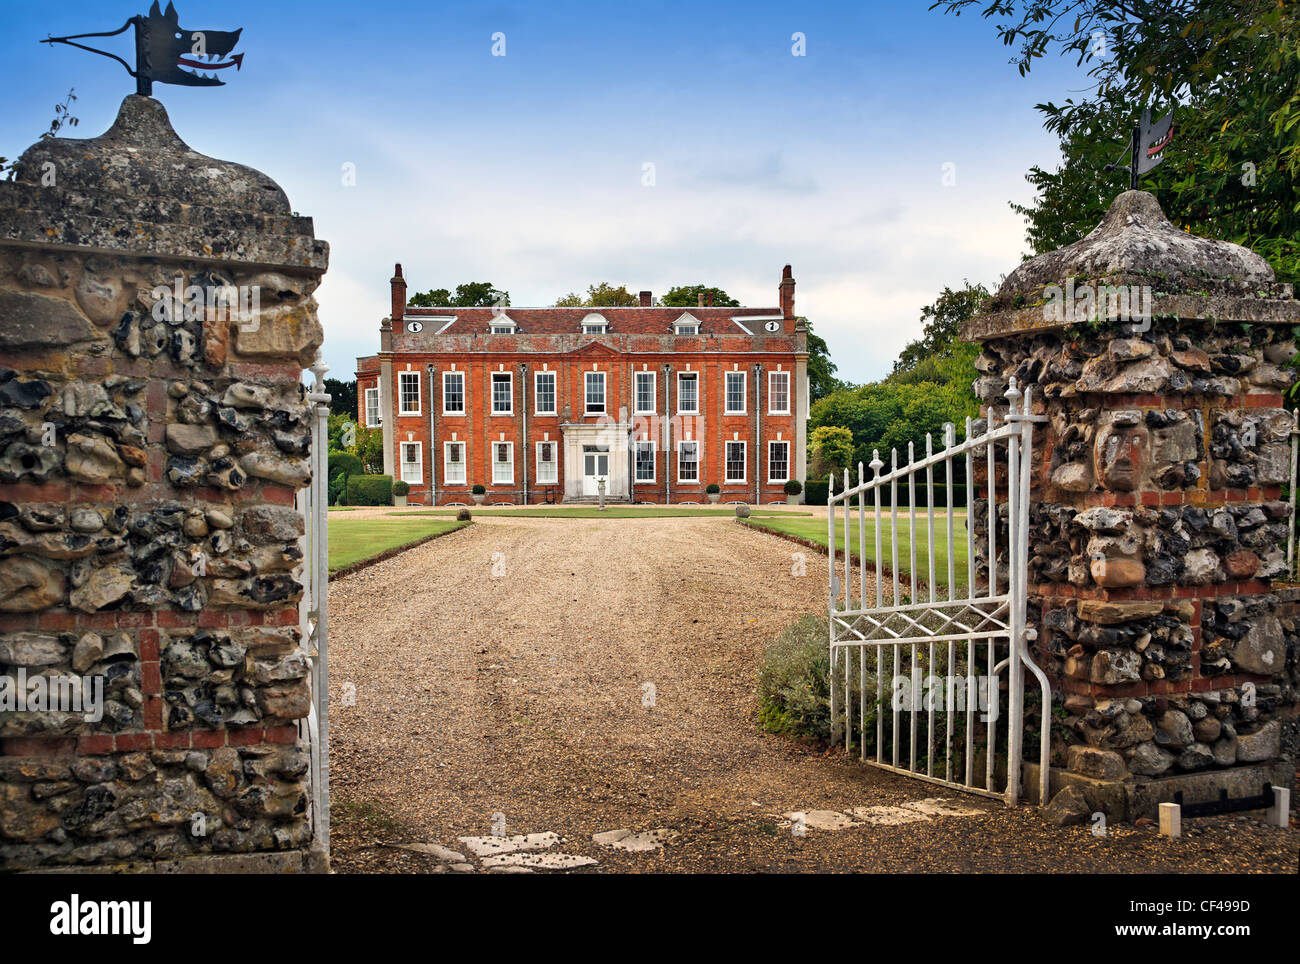 Belchamp Hall is a Queen Anne period English country house built in 1720 and is on the edge of the old vilage of - Stock Image